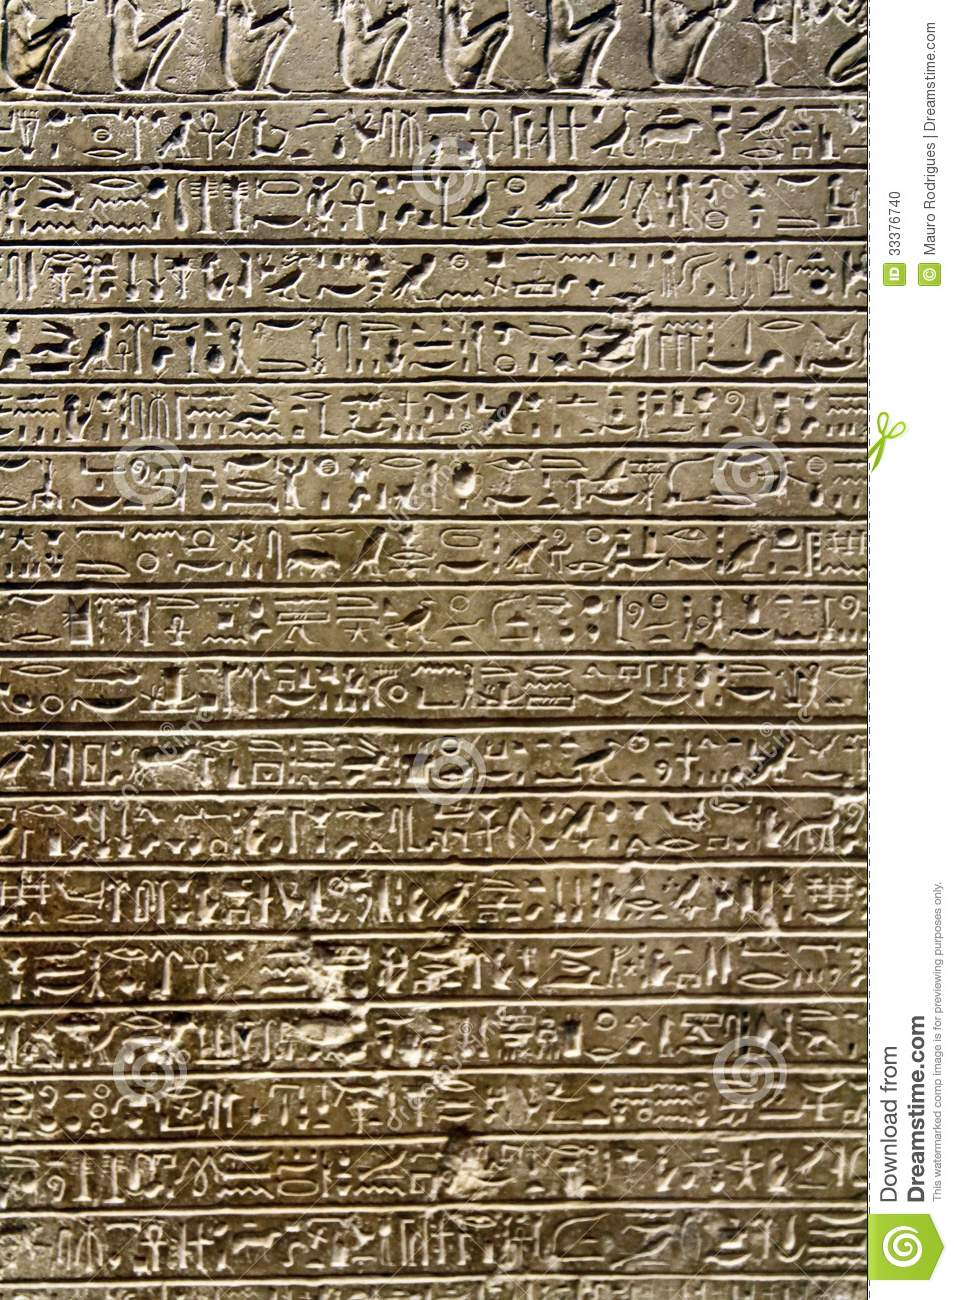 http://thumbs.dreamstime.com/z/ancient-egyptian-hieroglyphic-cuneiform-writing-33376740.jpg